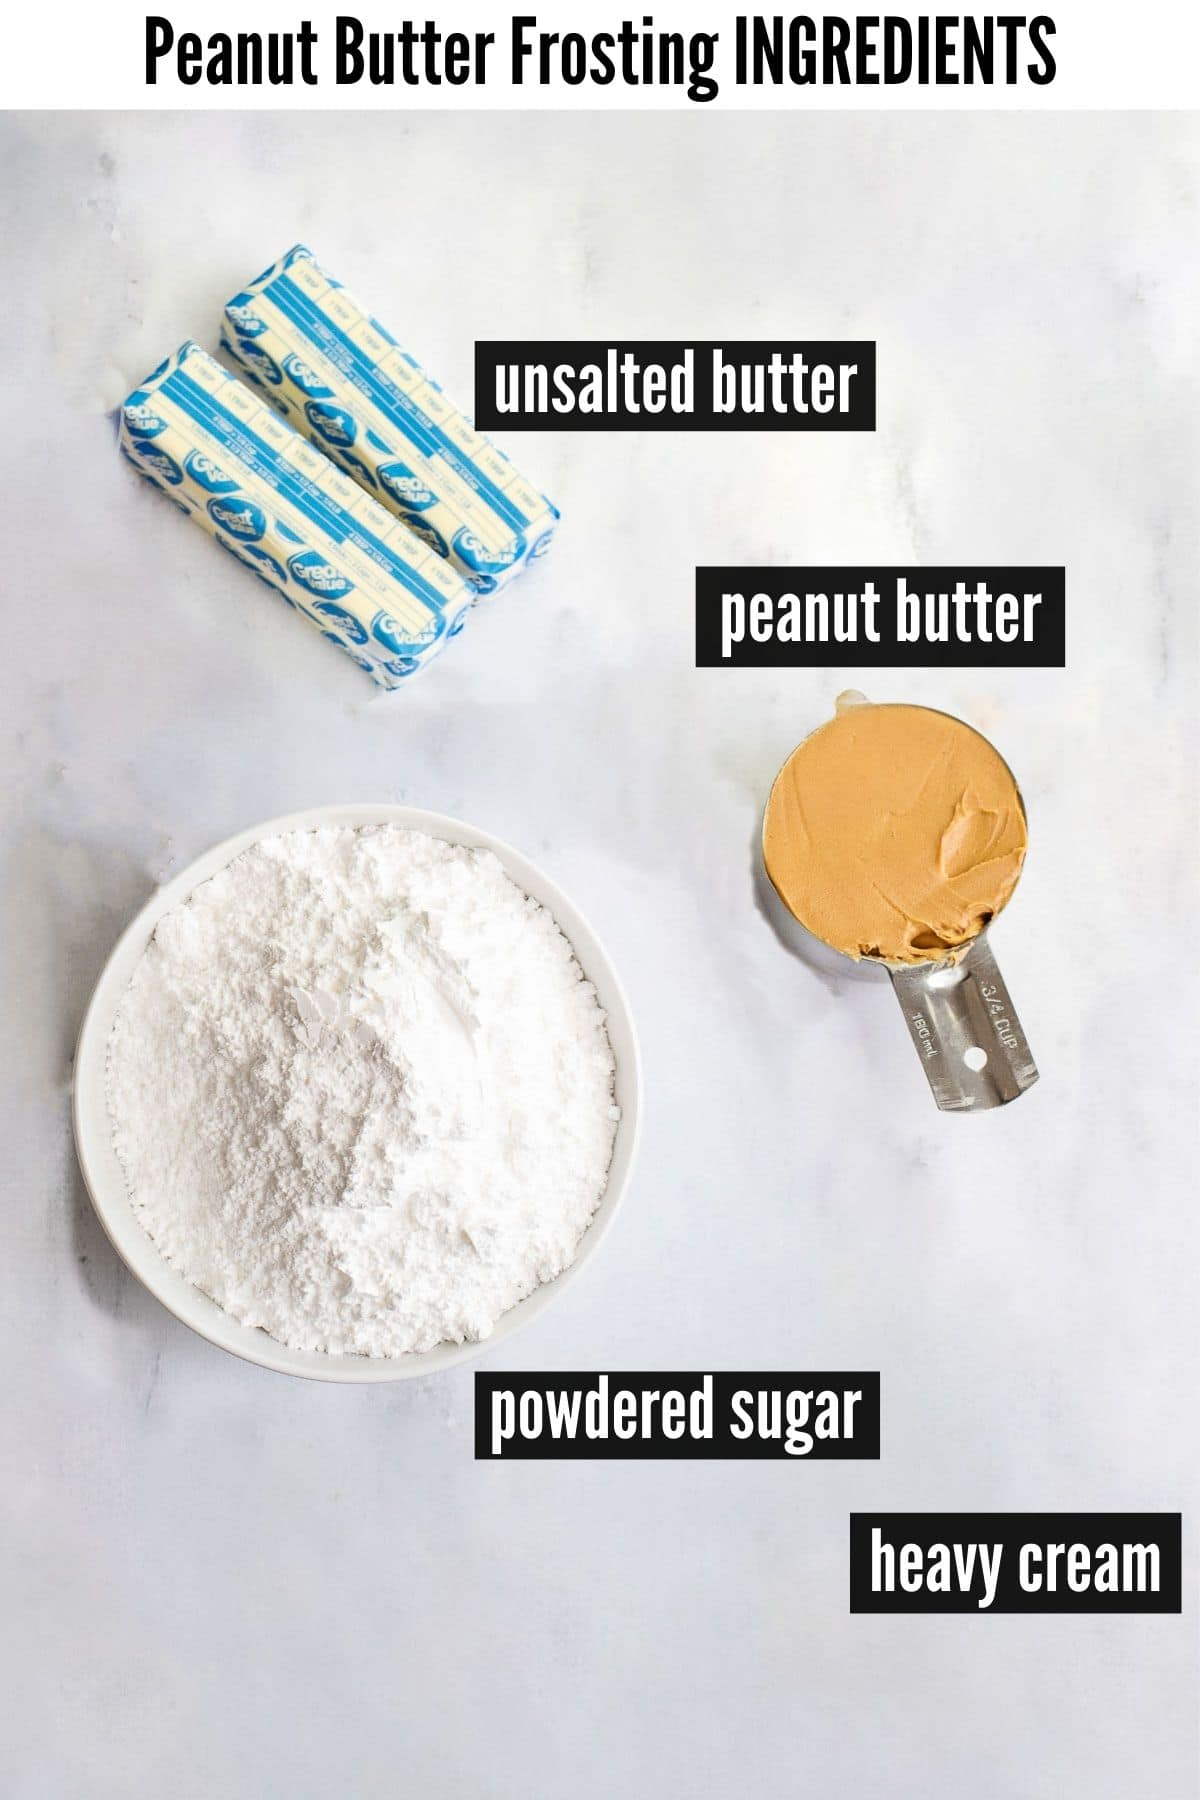 peanut butter frosting ingredients